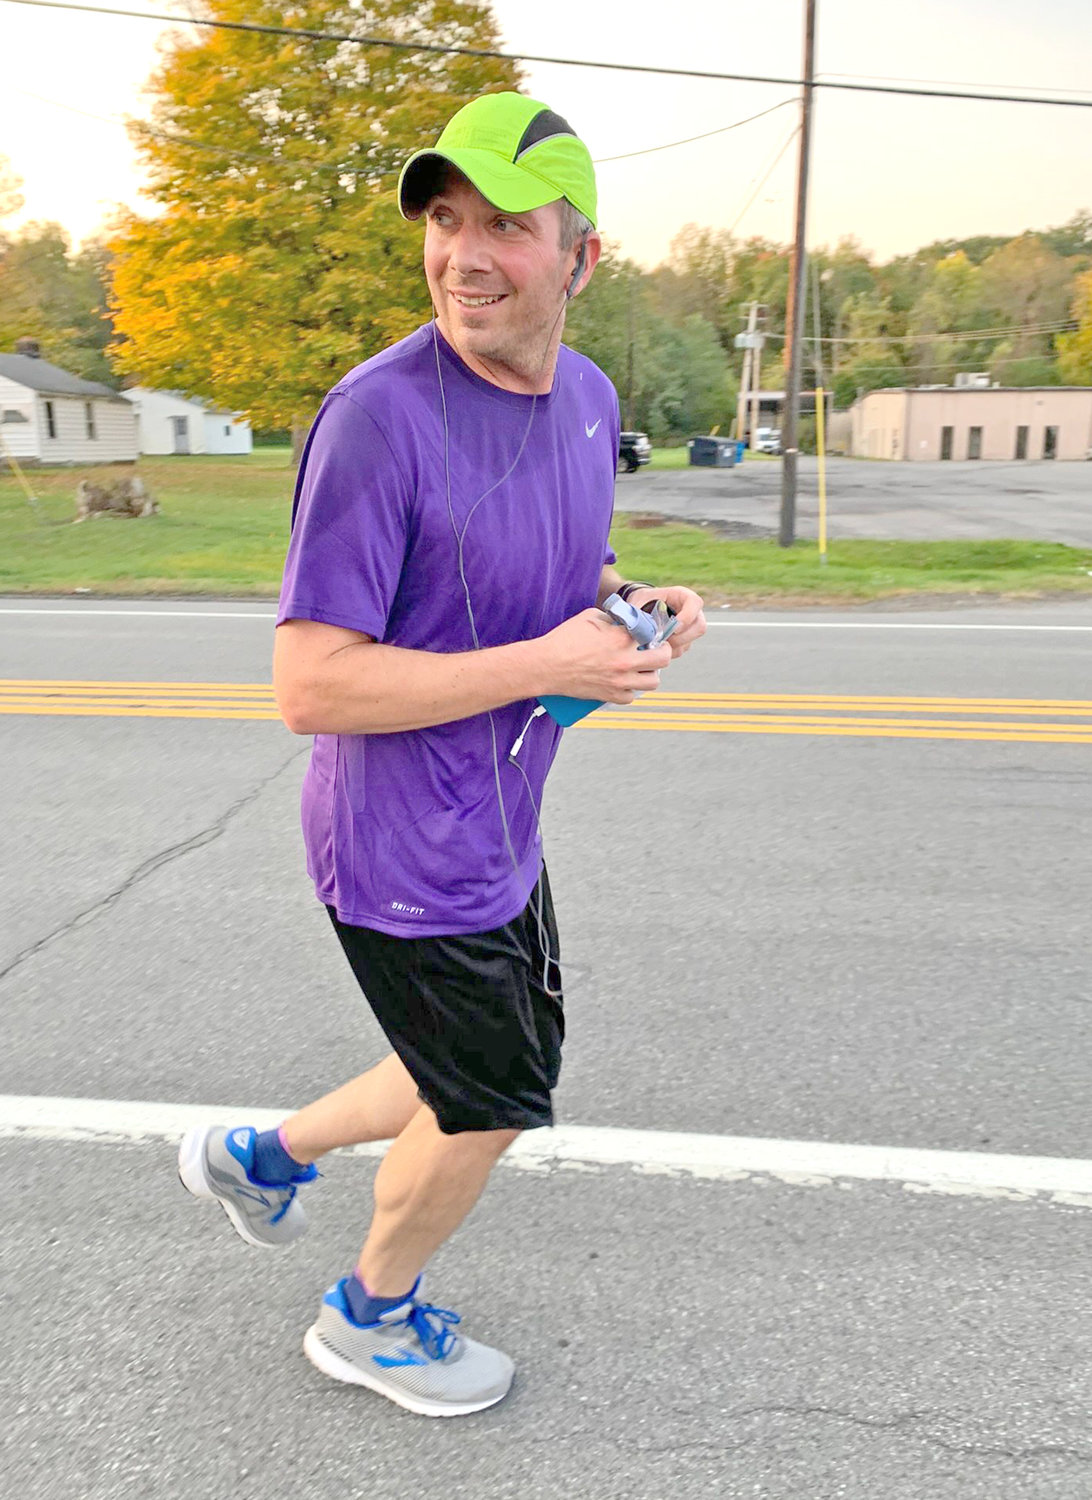 ON THE RUN — Mike Hoover, of Clinton, sets out on his virtual marathon during the morning of Oct. 10 to raise money for the Alzheimer's Association.  In his first marathon, run just over 4 hours within Clinton and New Hartford, Hoover was able to raise more than $3,500.